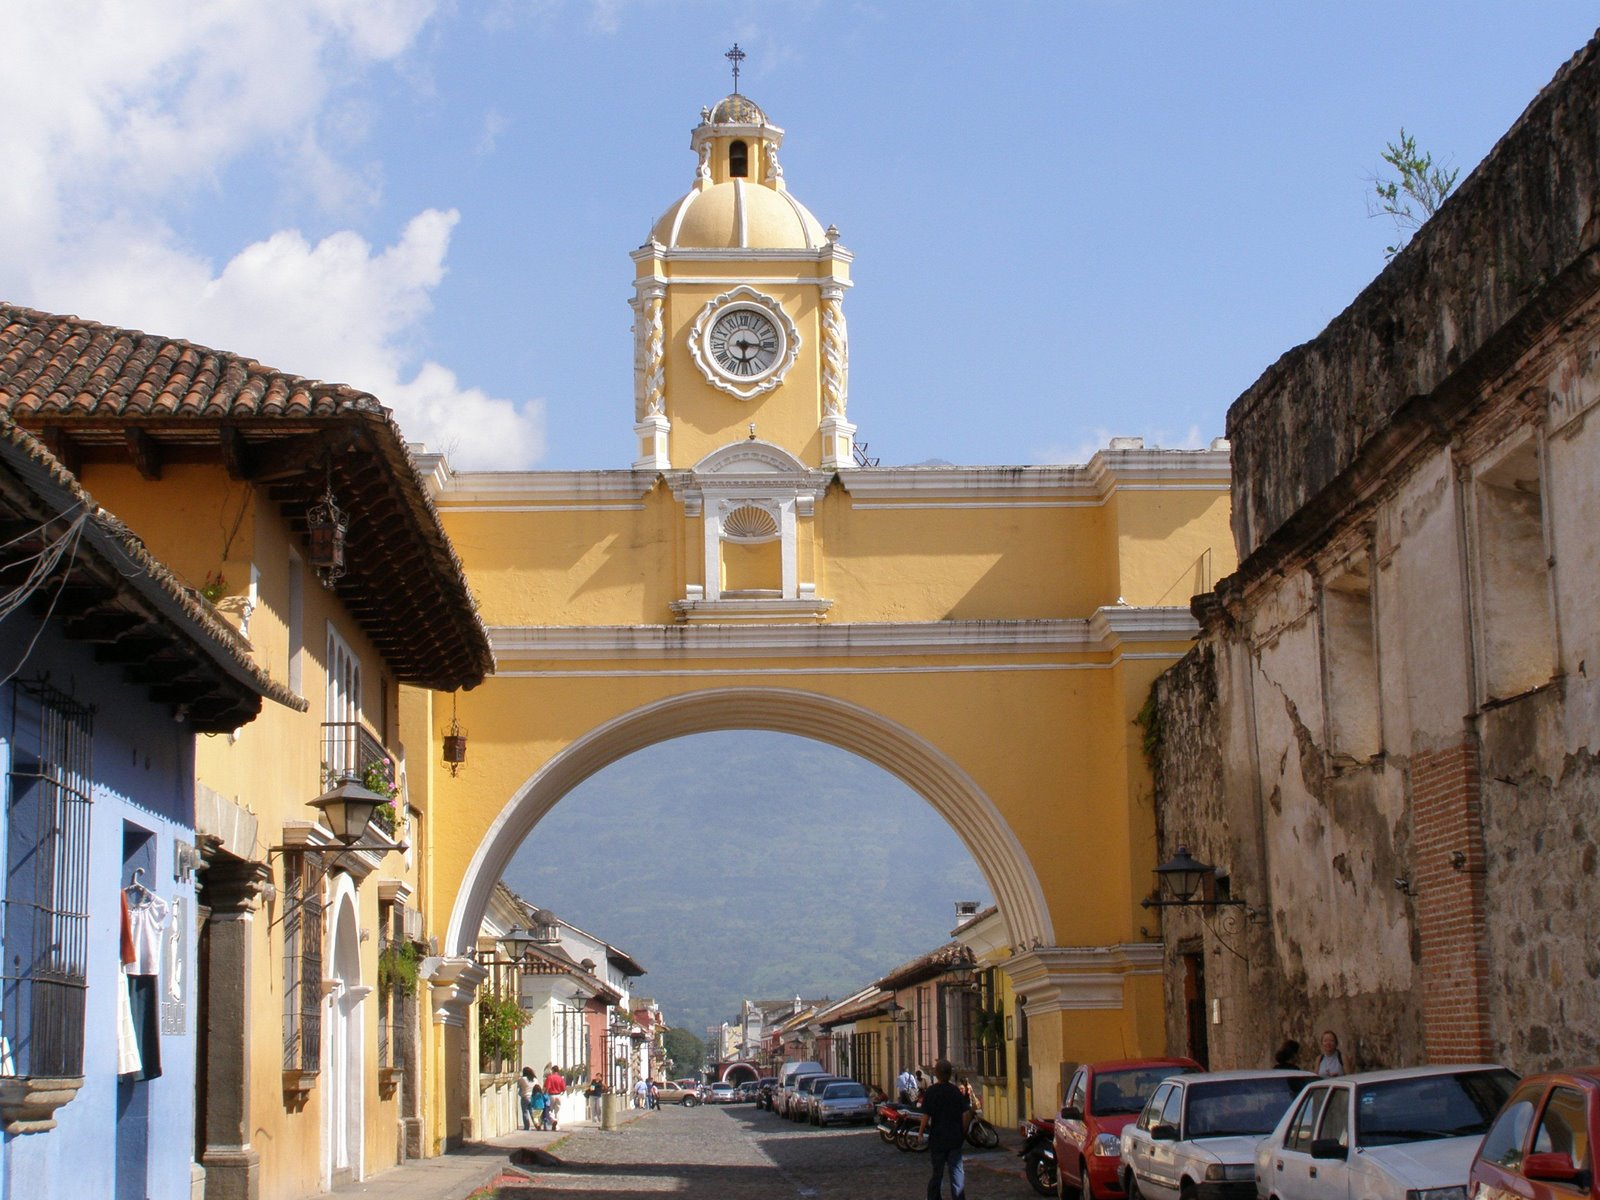 arch of santa catalina, la antigua guatemala